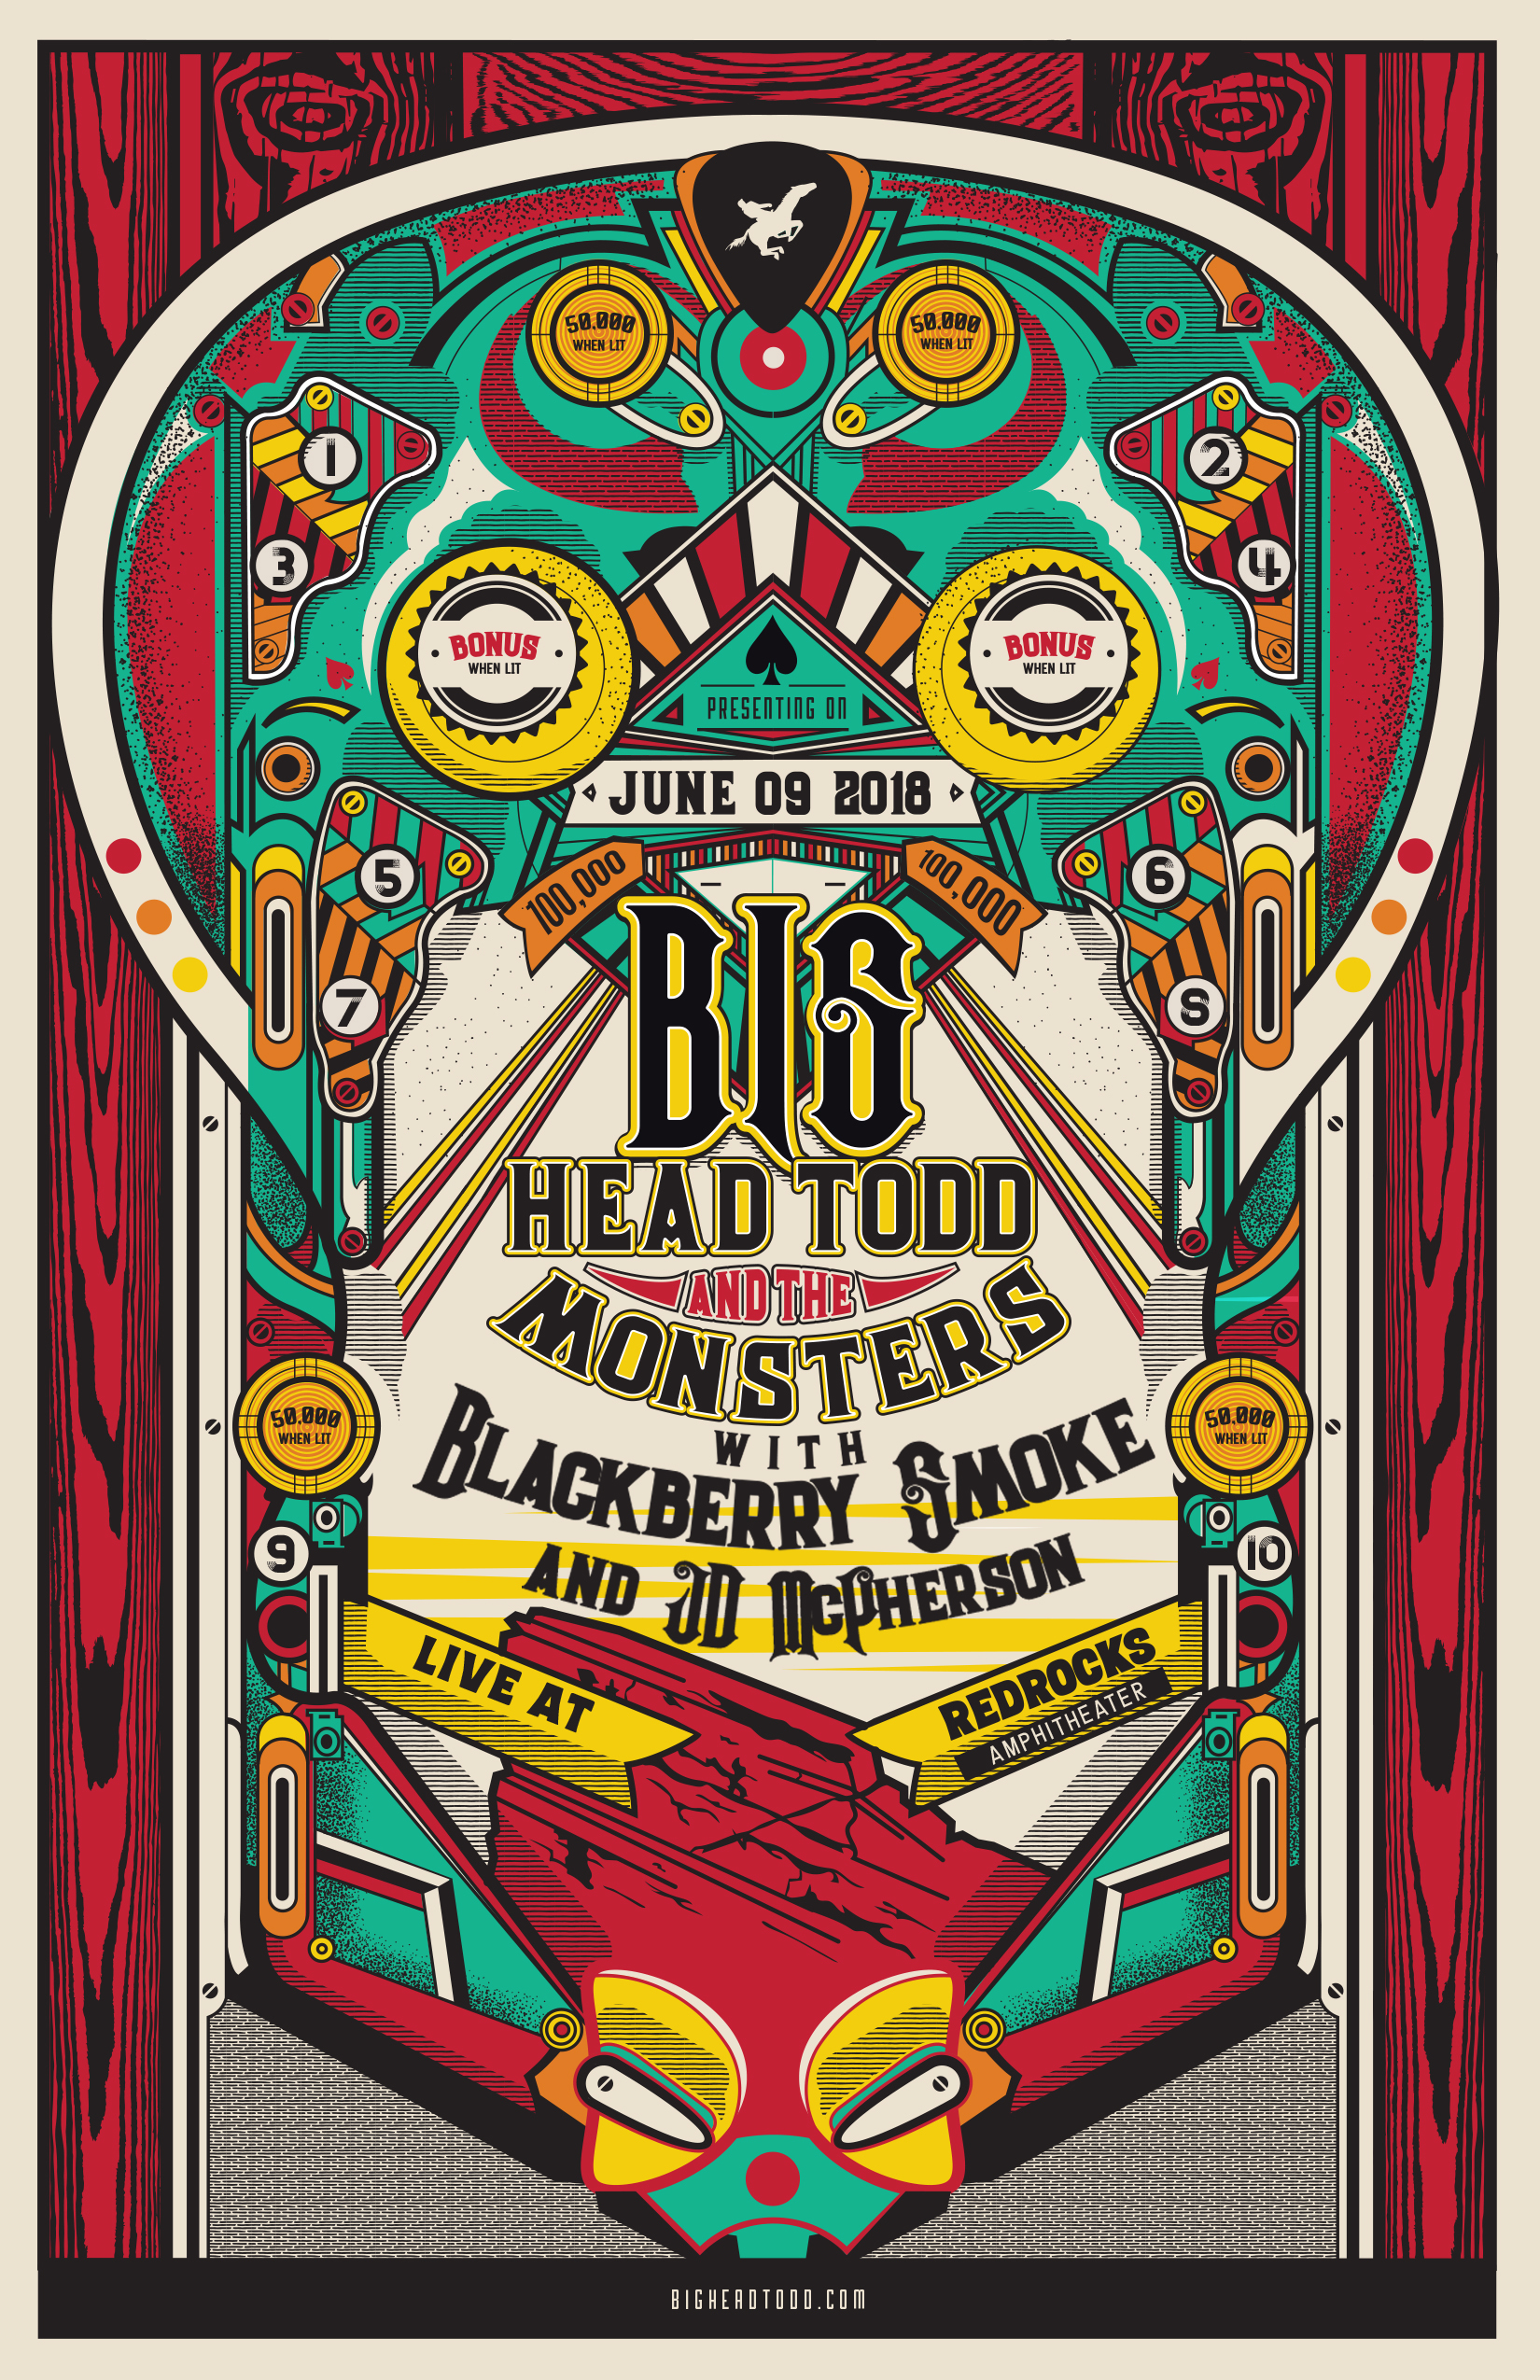 Blackberry Smoke & JD McPherson will be joining Big Head Todd at Red Rocks on June 9th!